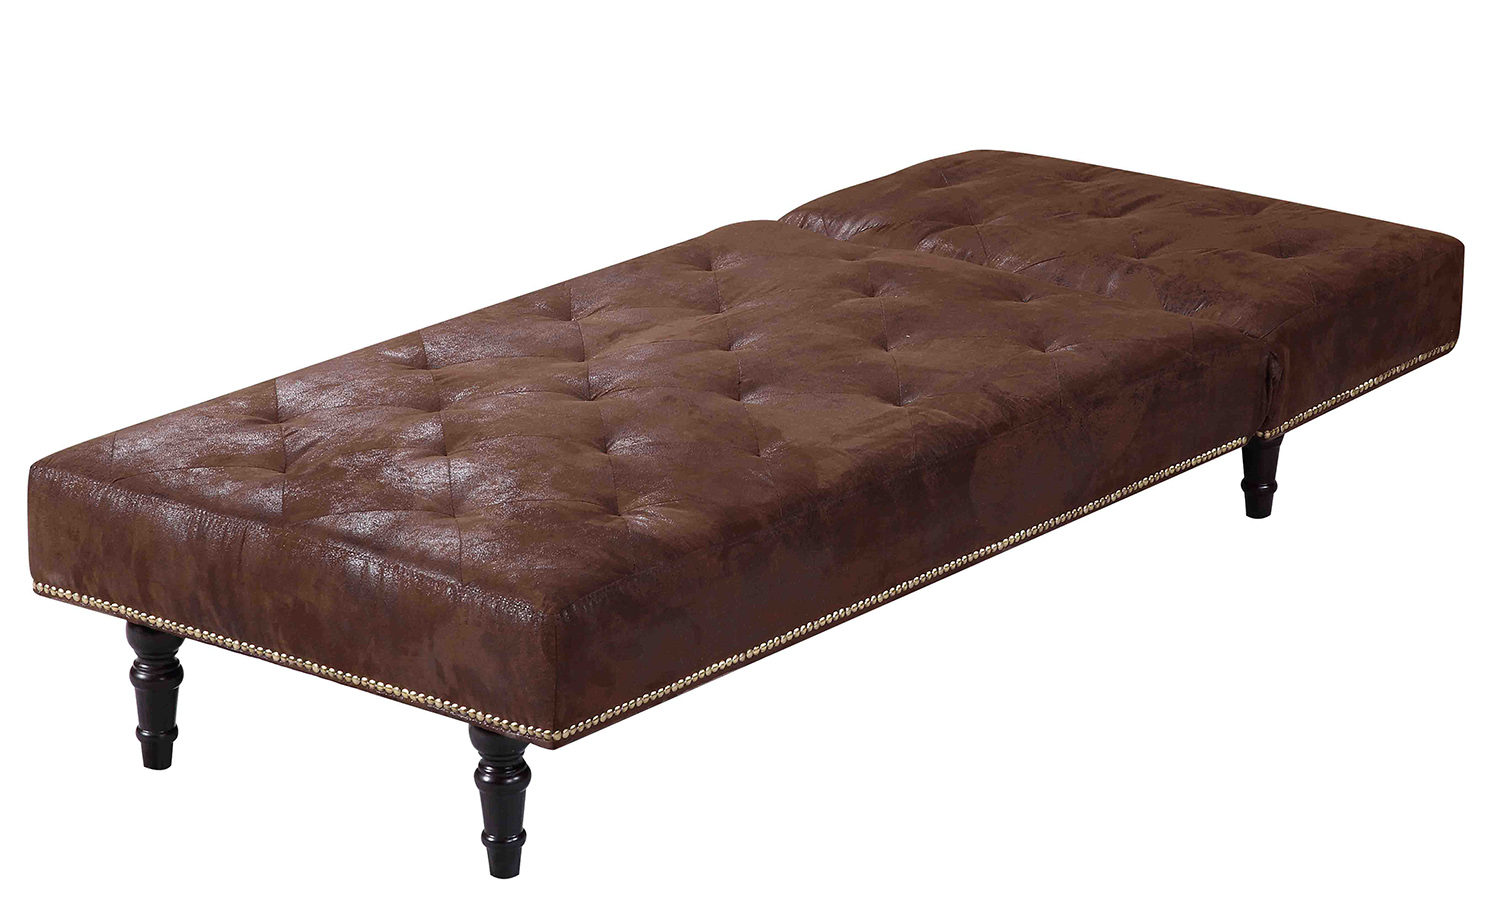 Luxury fabric chaise longue 1 seater sofa bed brown for Antique chaise longue ebay